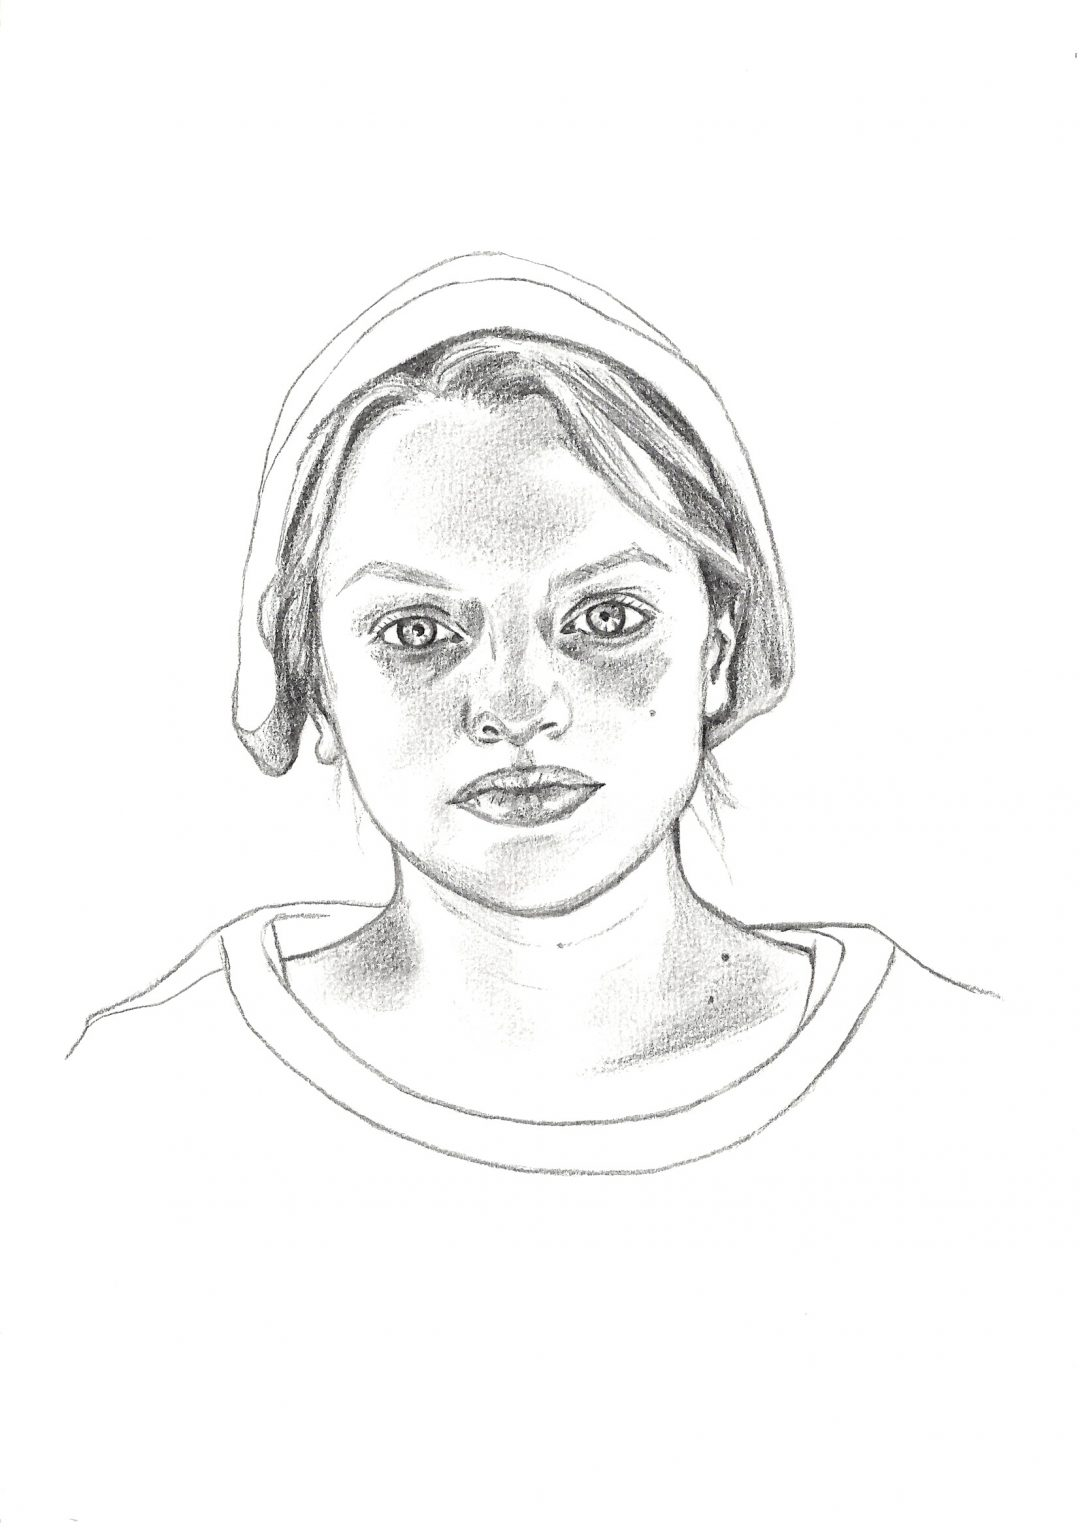 OFFRED (THE HANDMAID'S TALE)